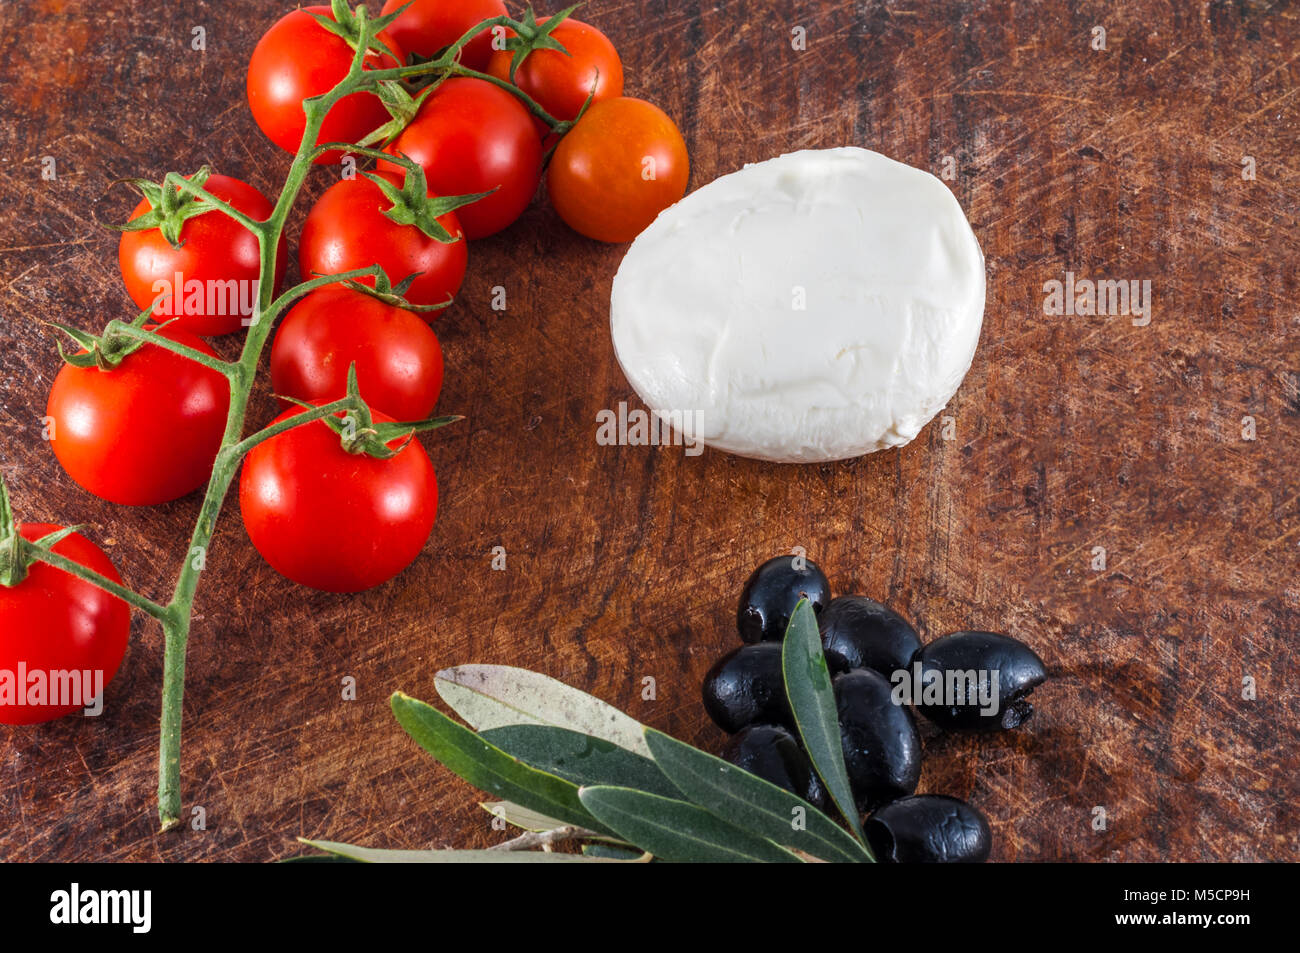 Mozzarella chese, cherry tomatoes and black olives on wooden table - Stock Image